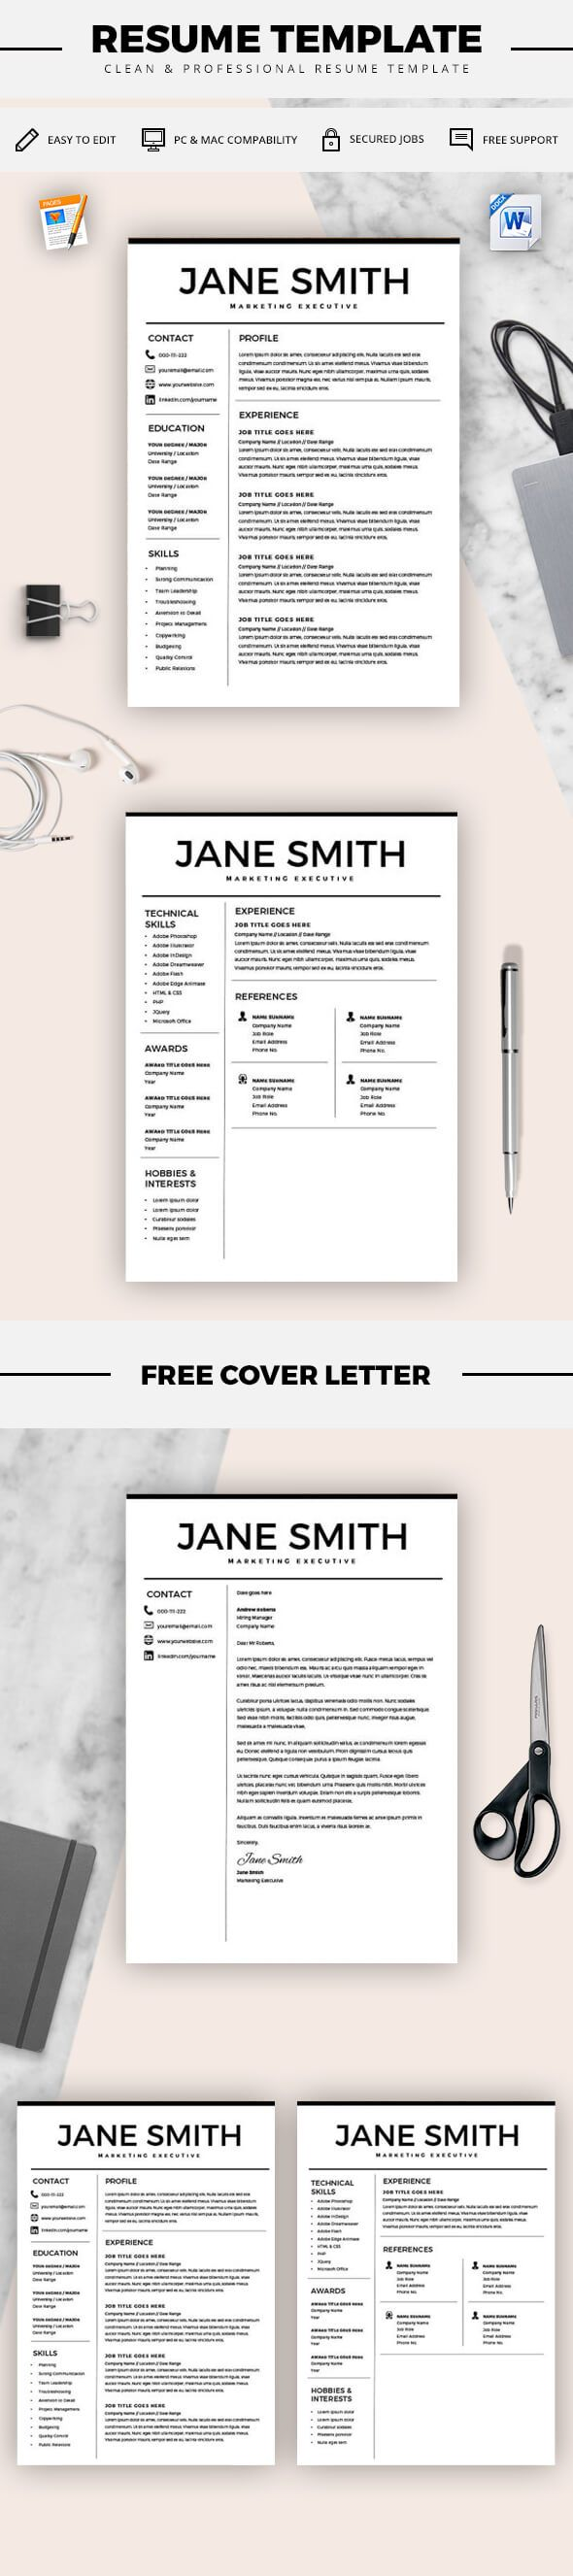 Resume for Microsoft Word - Minimal Resume Template - CV Template + ...